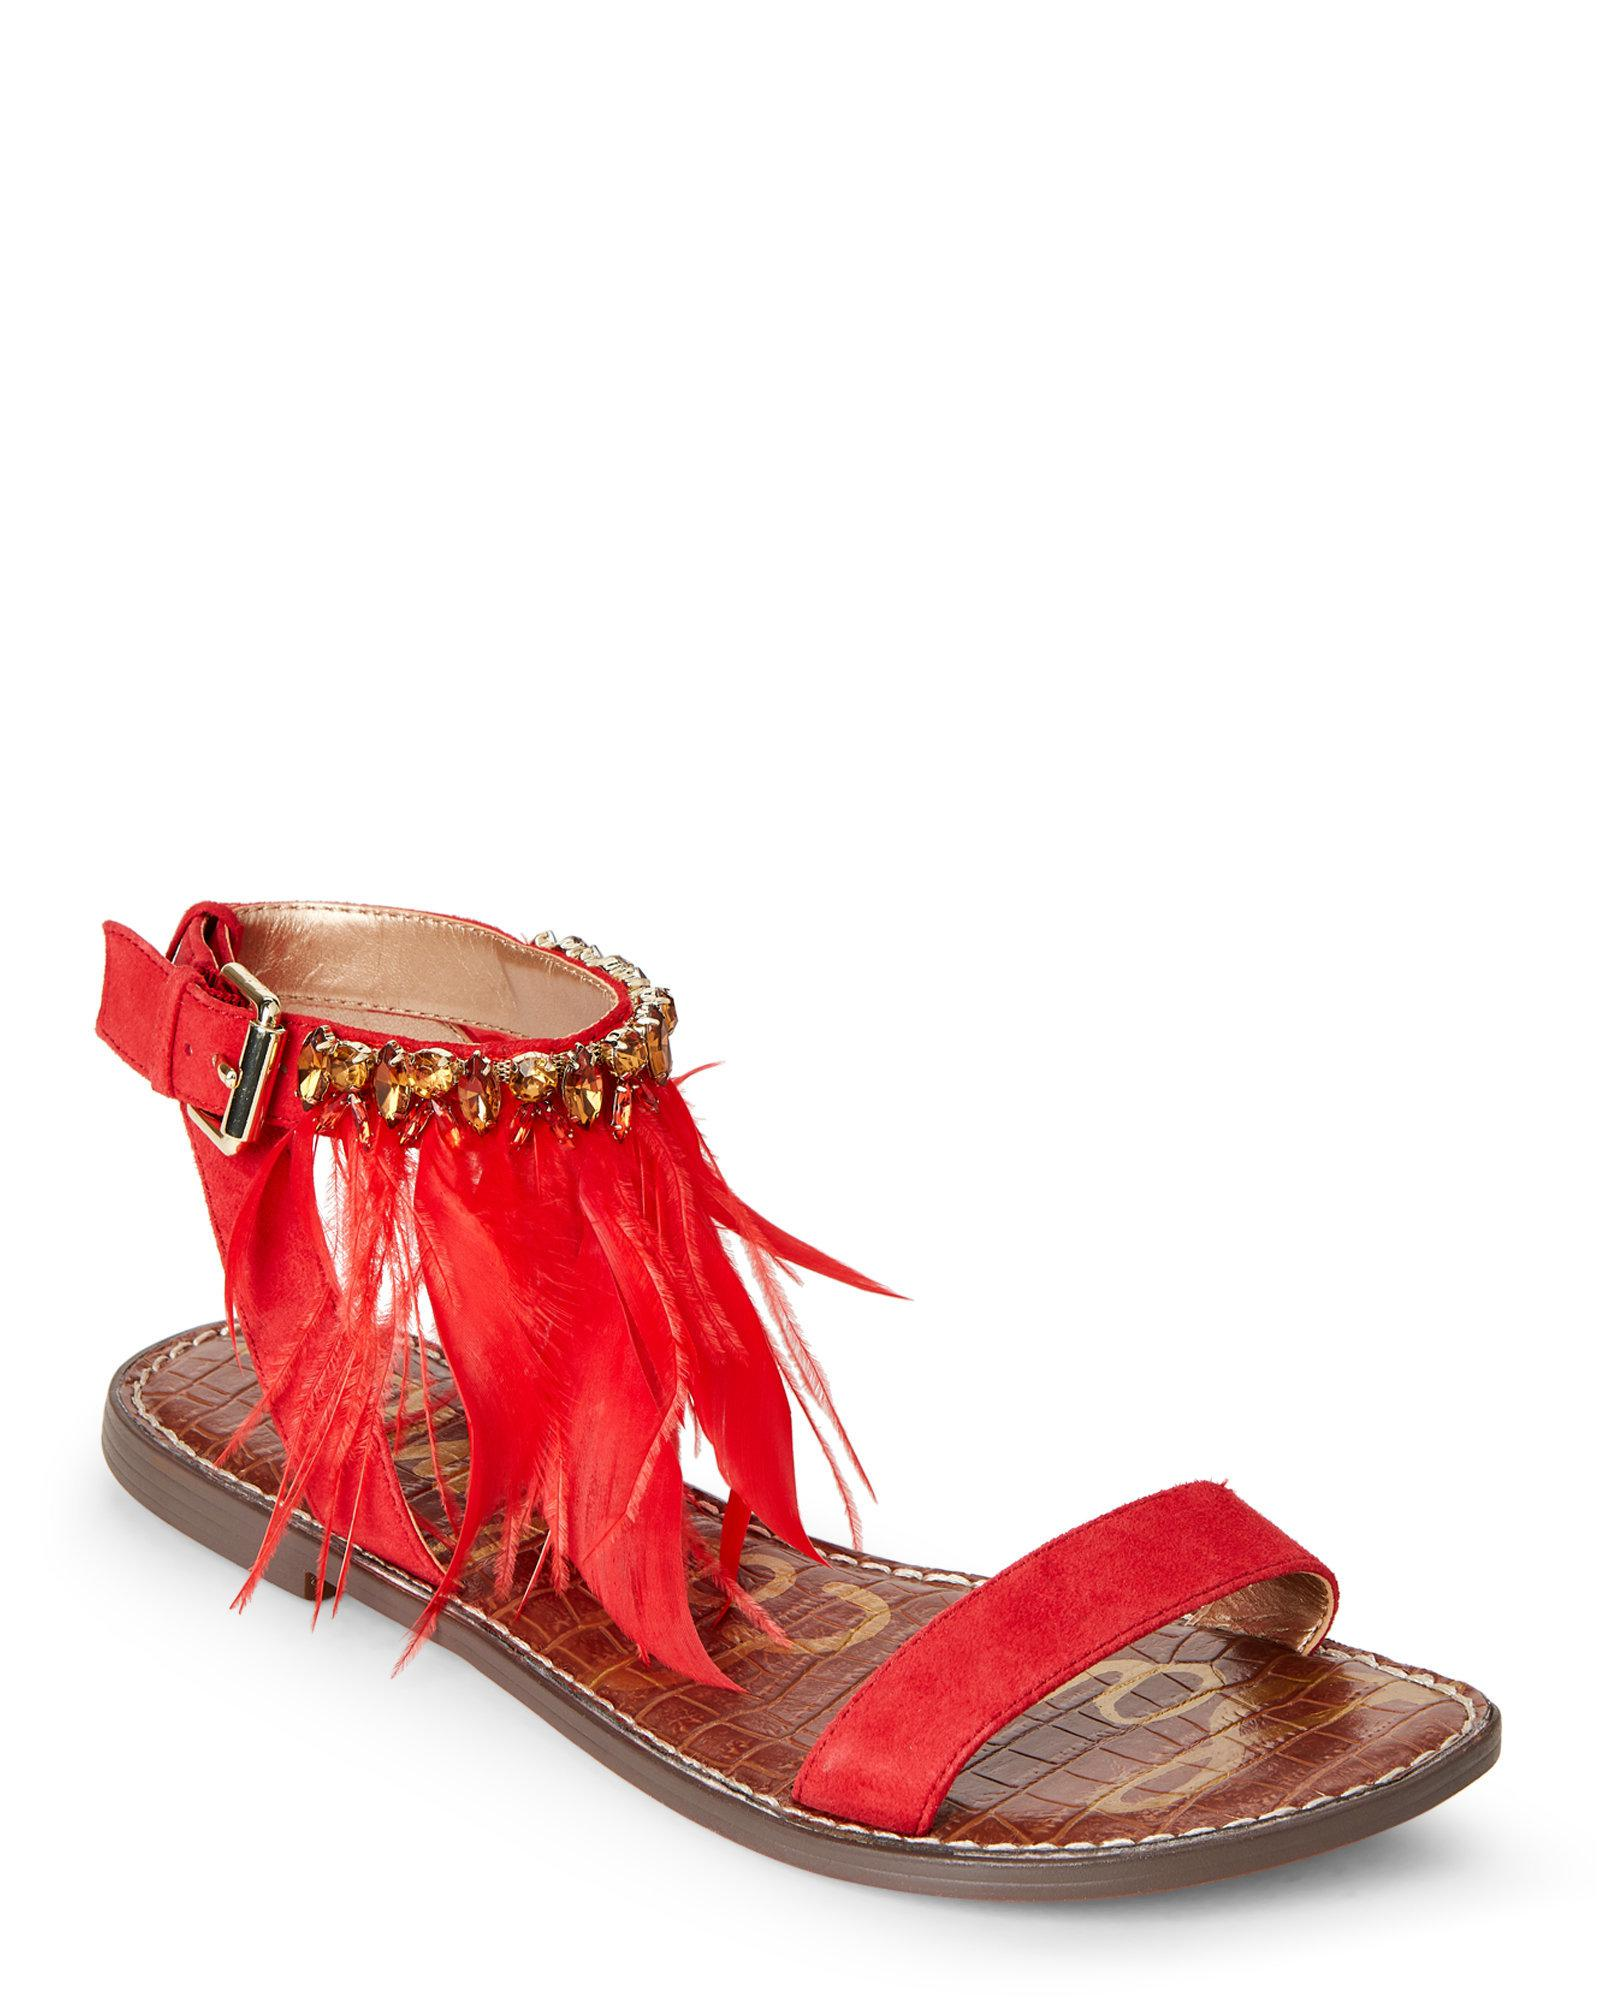 6a16d74900d7e0 Lyst - Sam Edelman Red Genevia Embellished Flat Sandals in Red